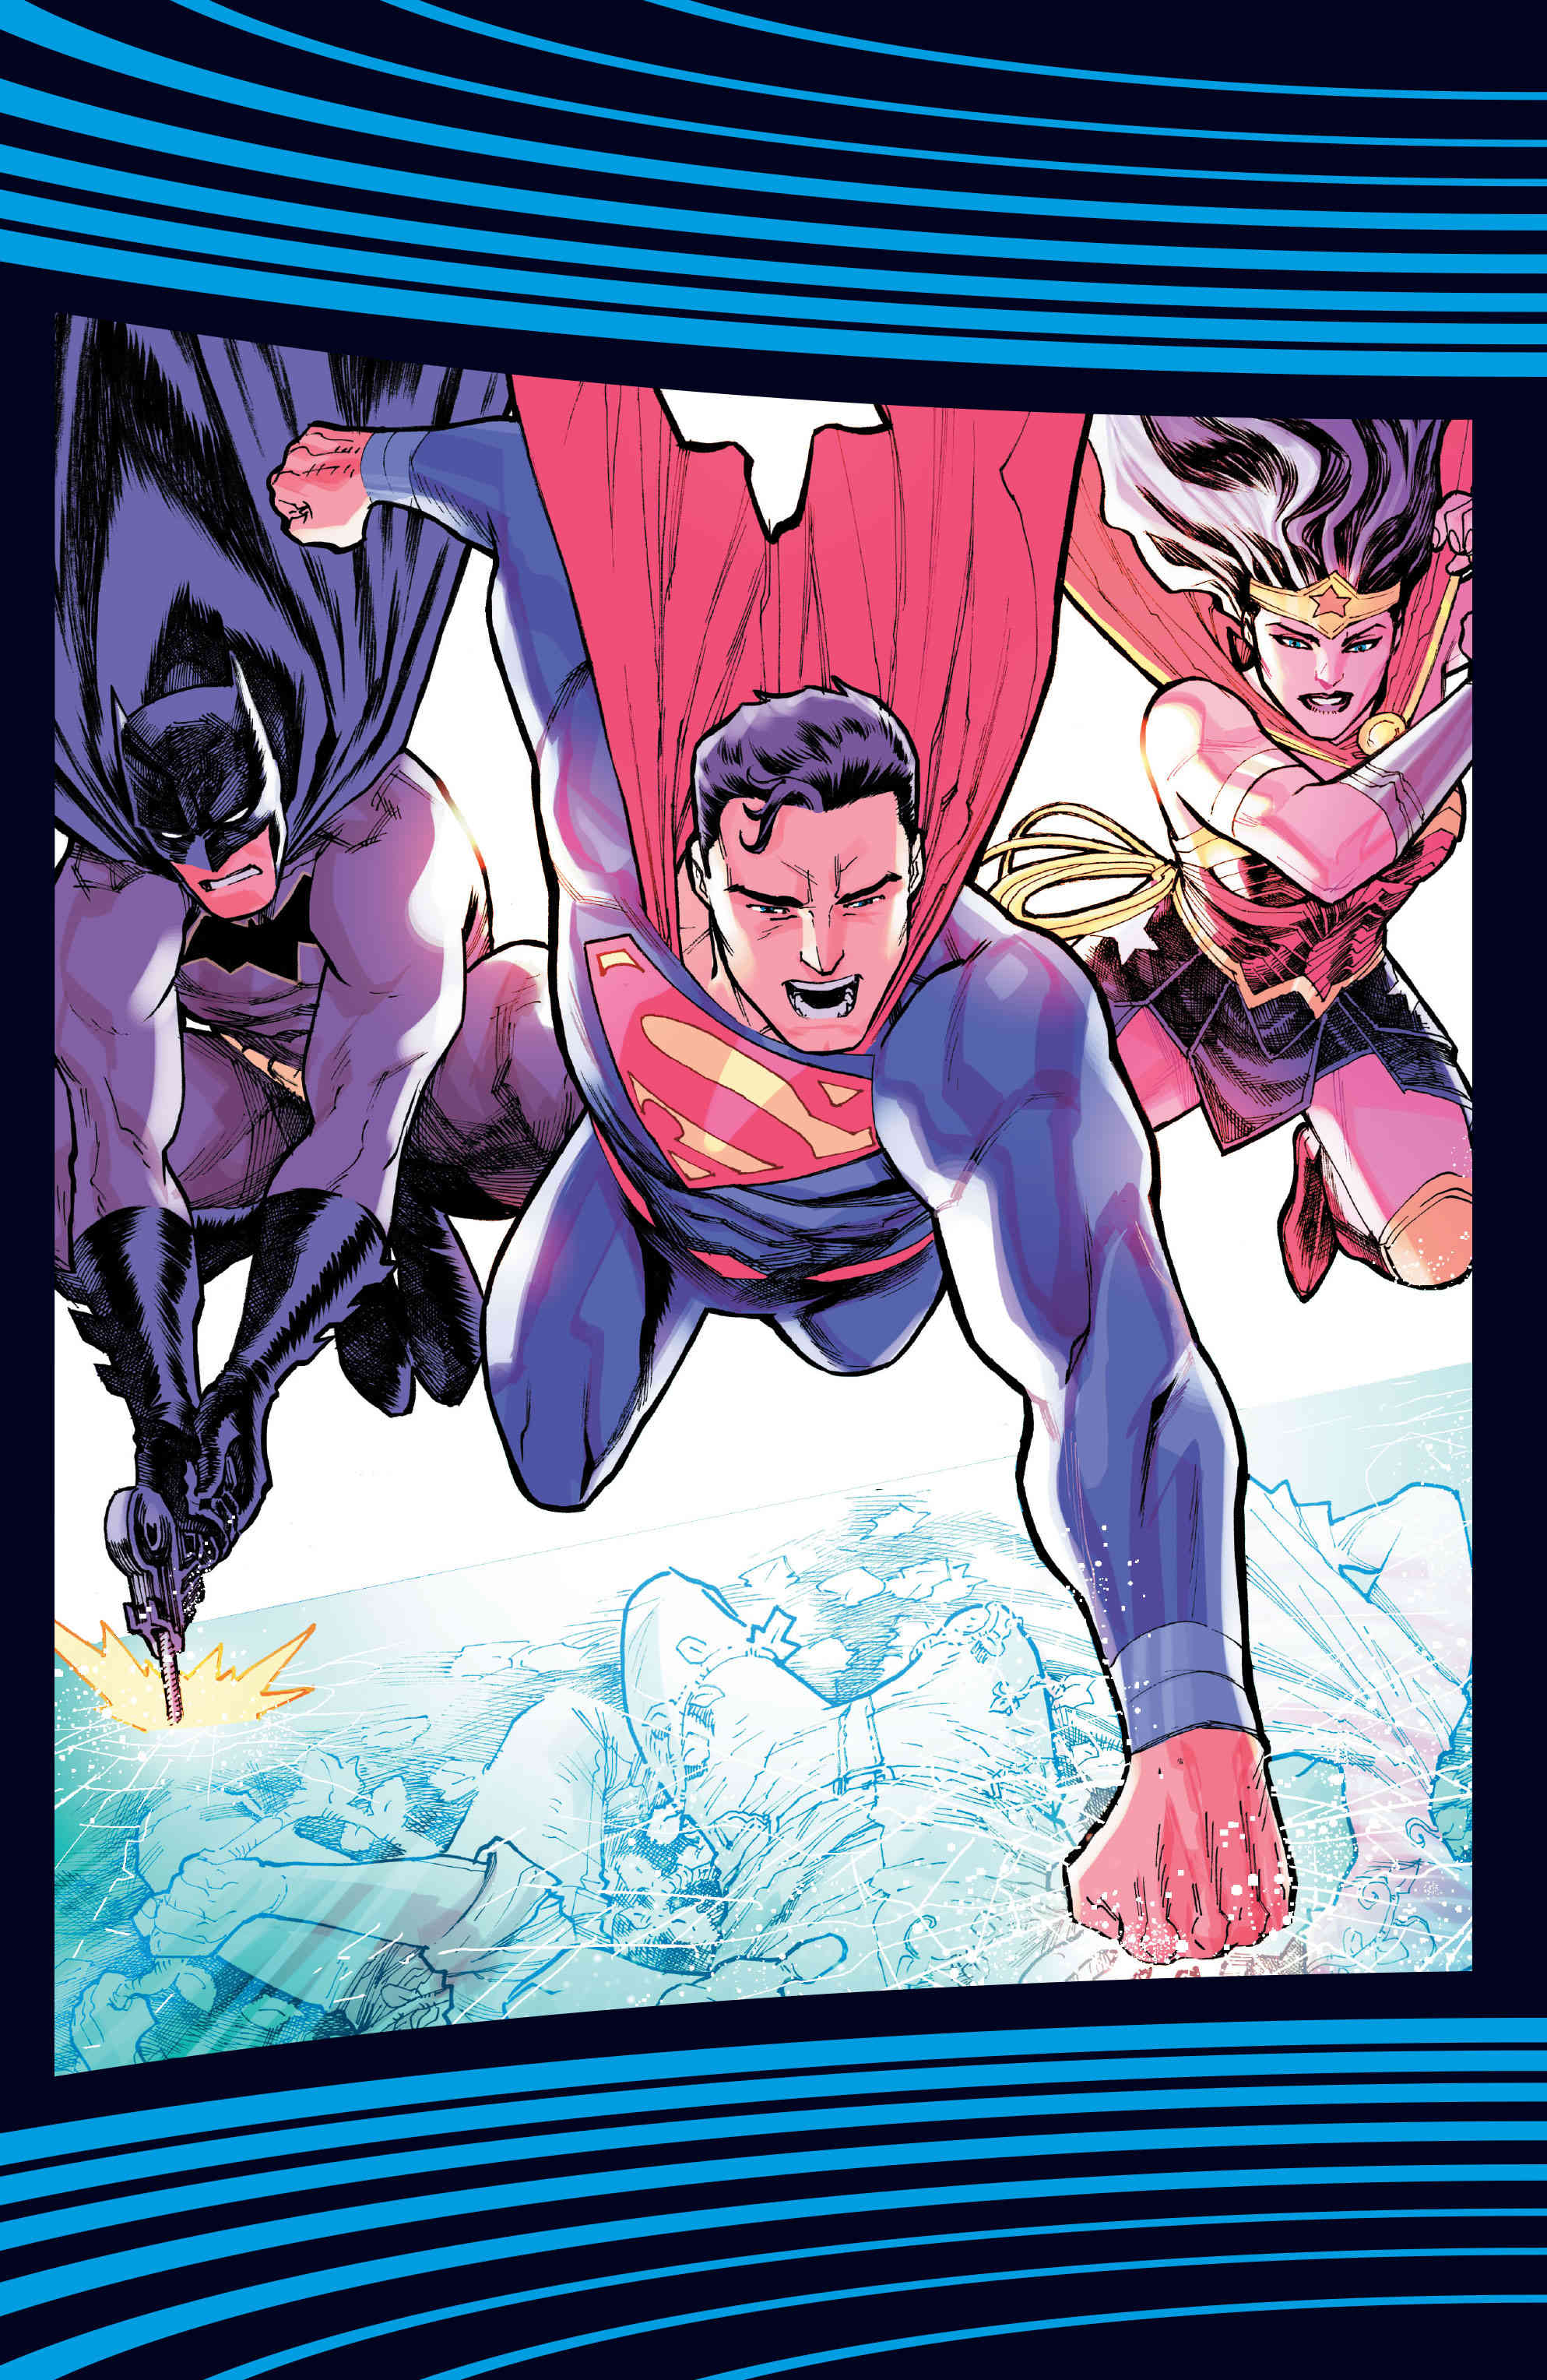 Trinity Vol. 1: Better Together Review